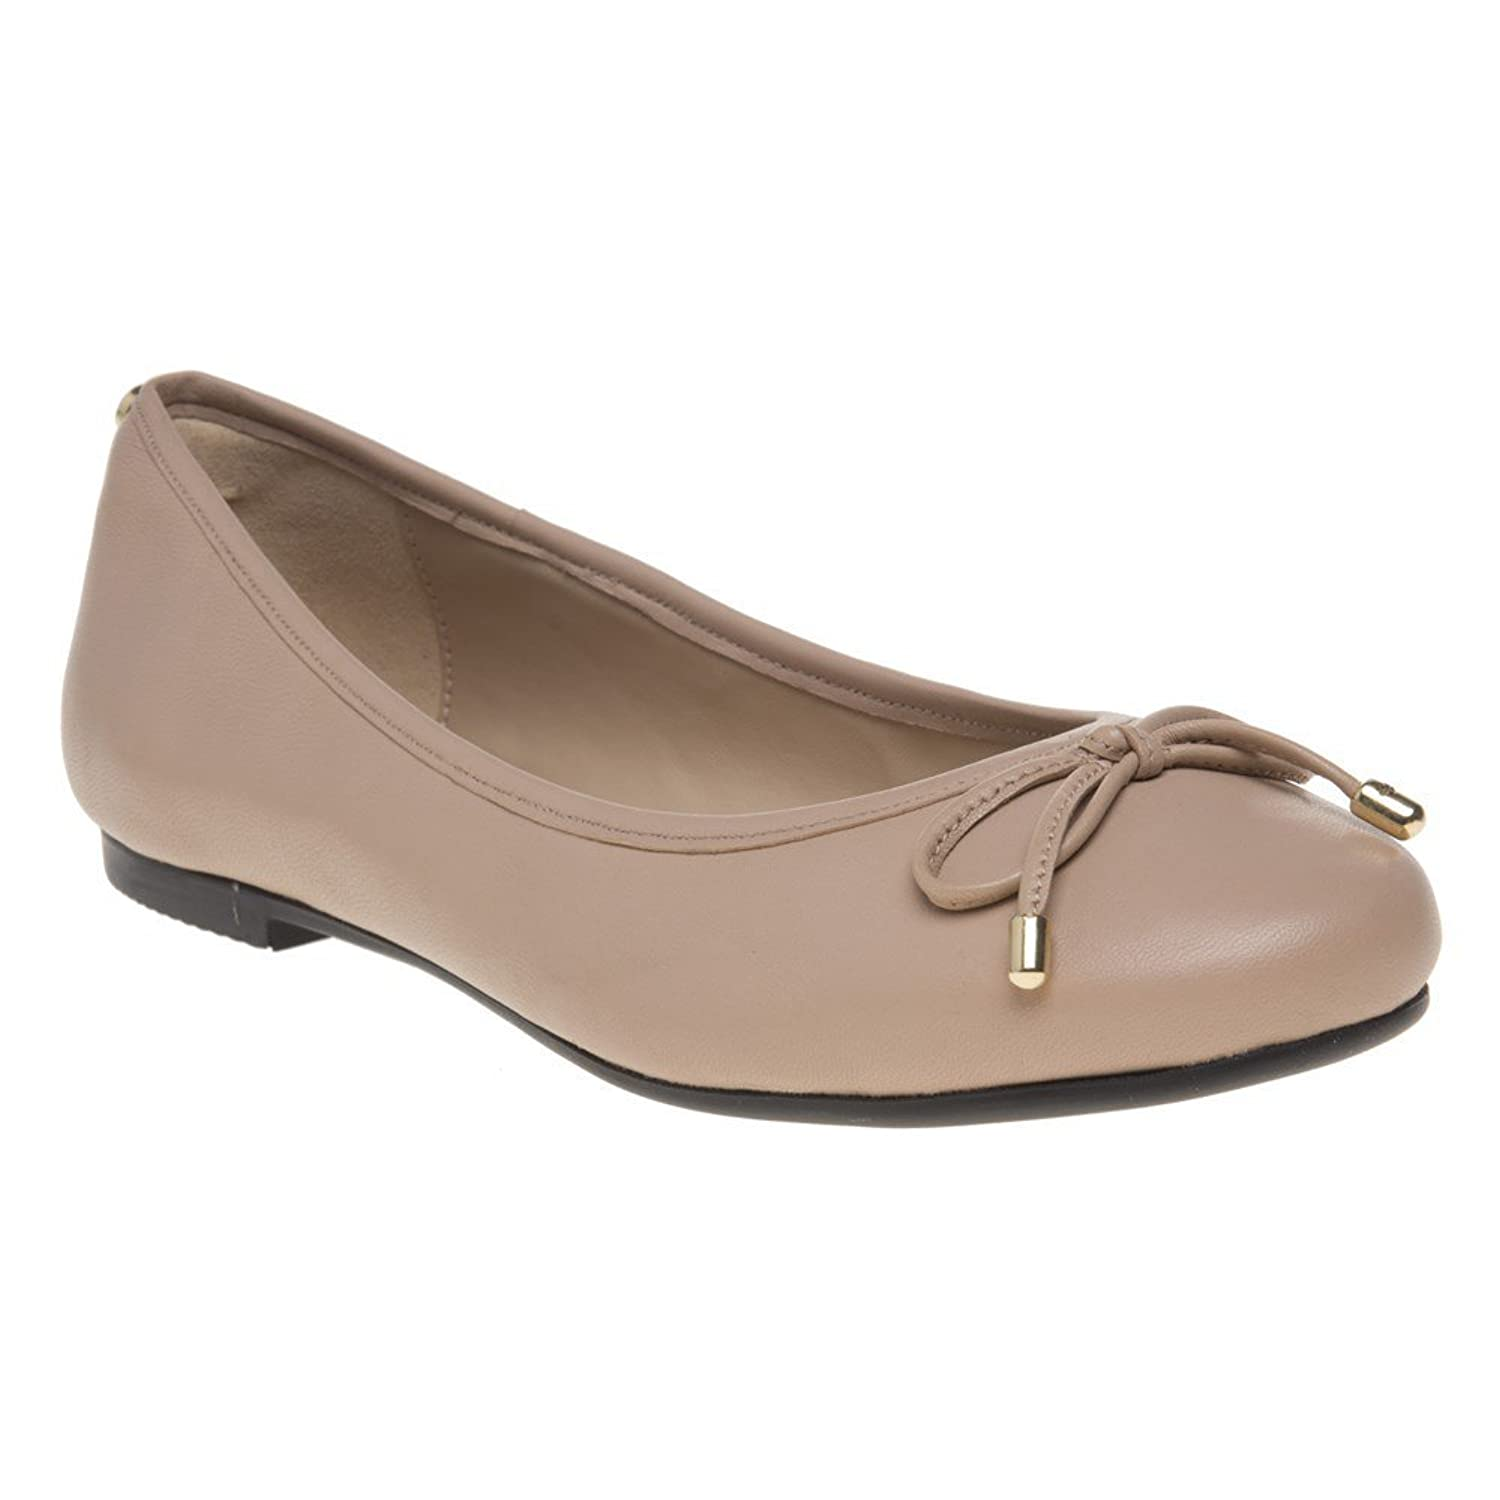 16c82b654a9 DKNY Queen Mujer Zapatos Nude  7EgUl1514806  - €17.95